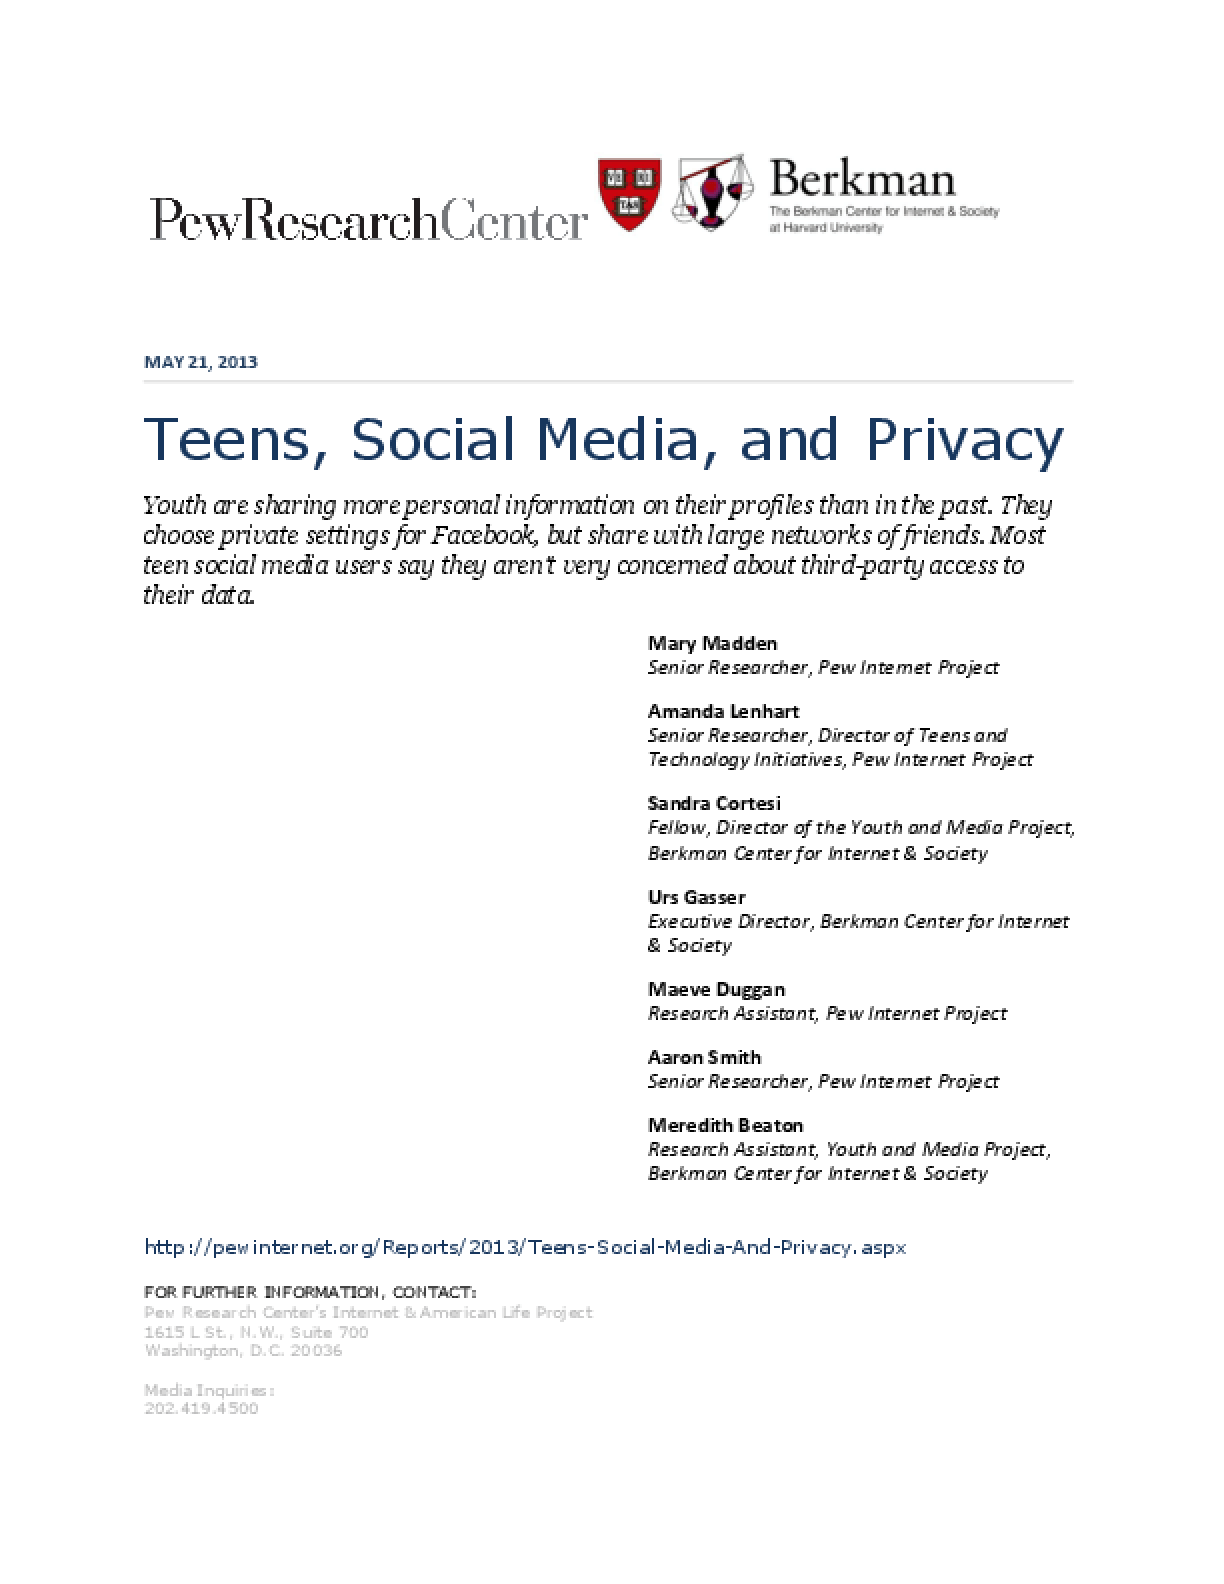 Teens, Social Media, and Privacy